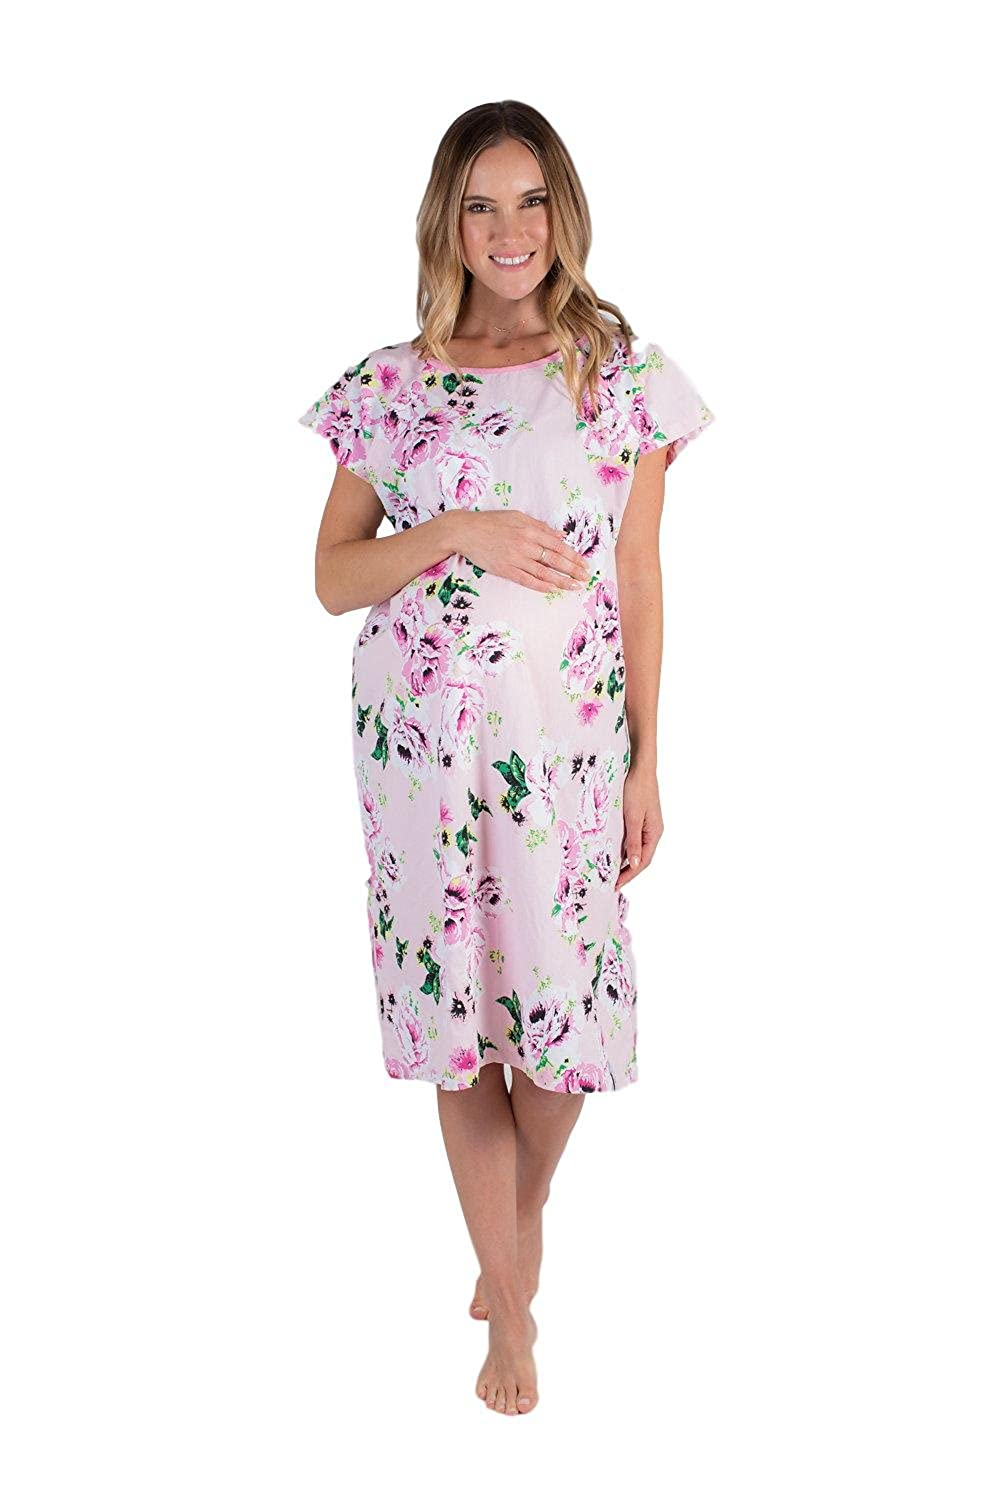 Amazon.com: Gownies - Labor & Delivery Maternity Hospital Gown by ...